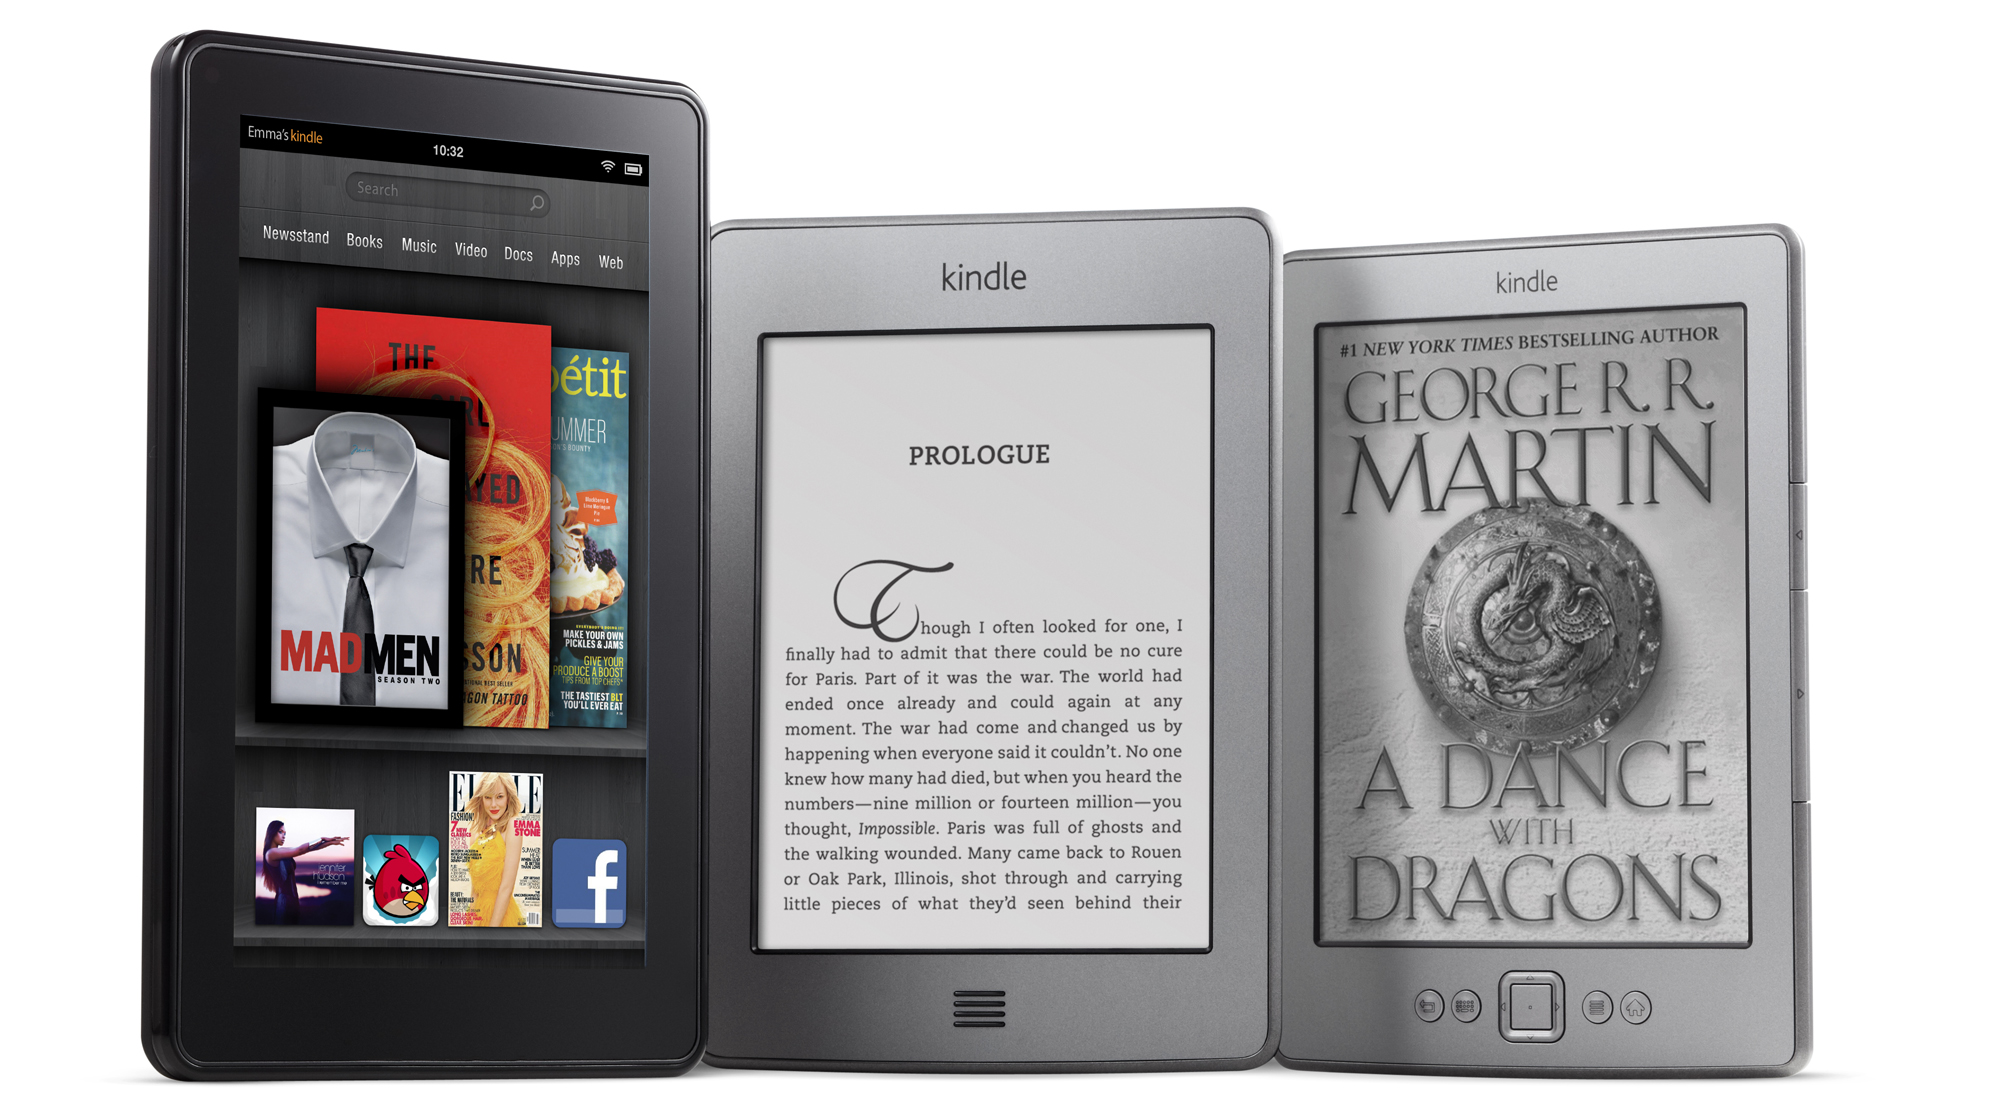 Lector De Libros Electronicos Kindle Amazon Lanza Kindle Fire, Mucho Más Que Un Léctor De